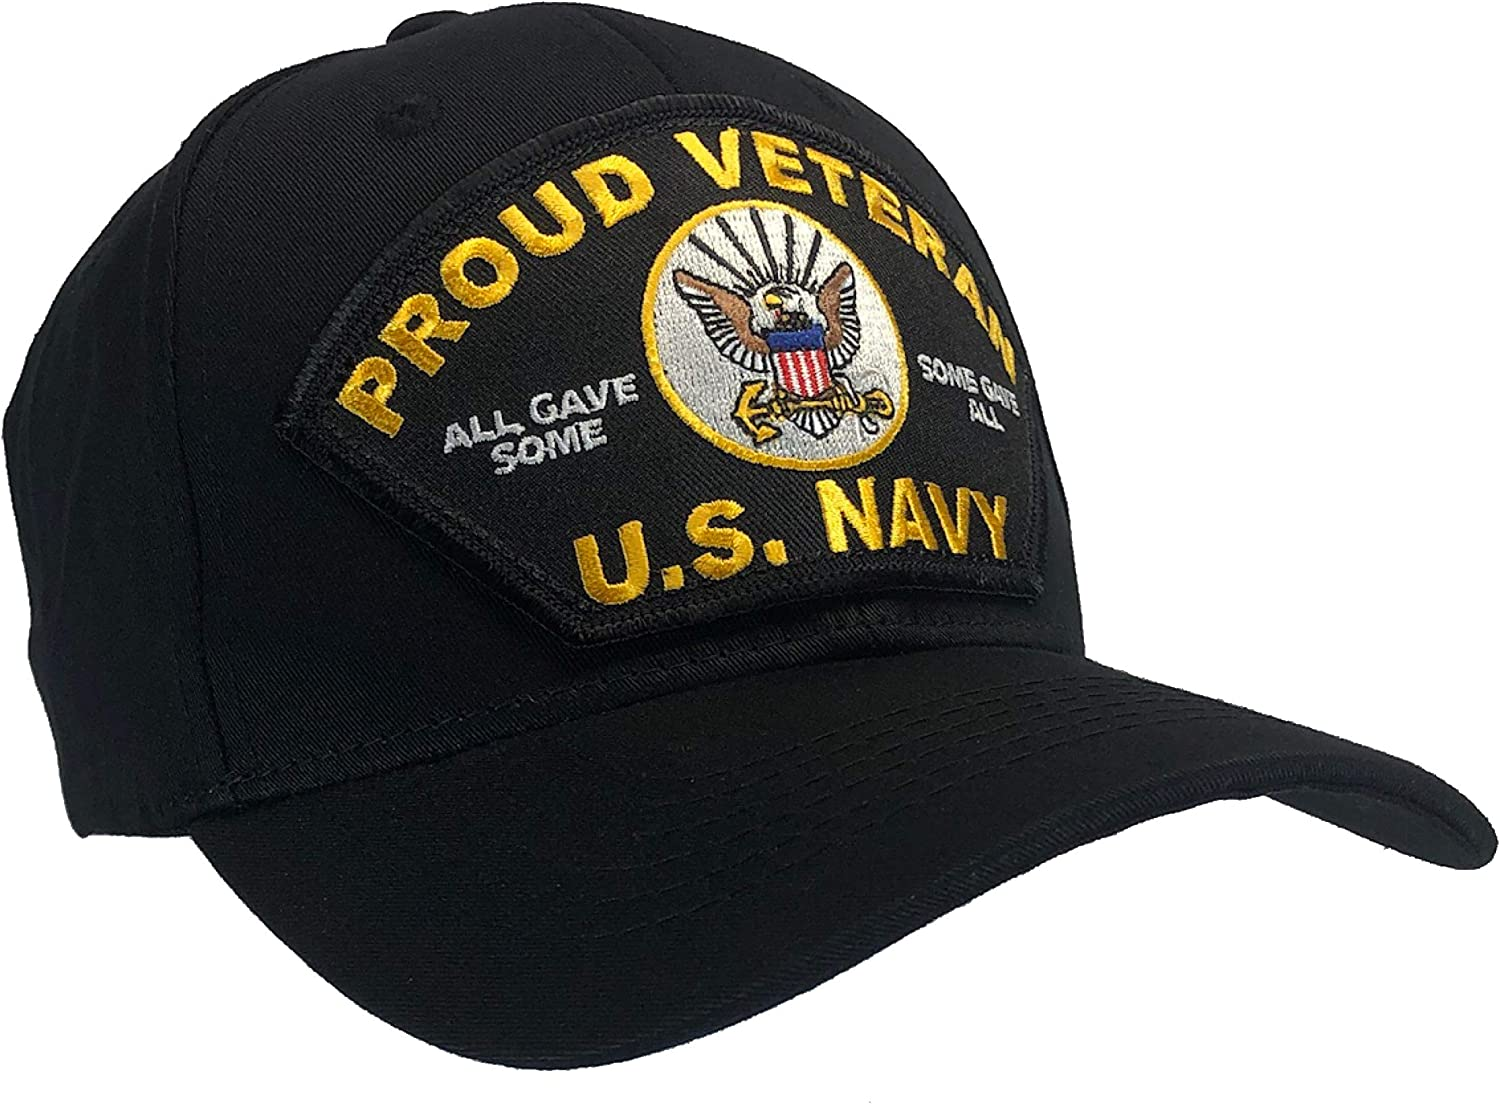 Some Gave All Ballcap All Gave Some